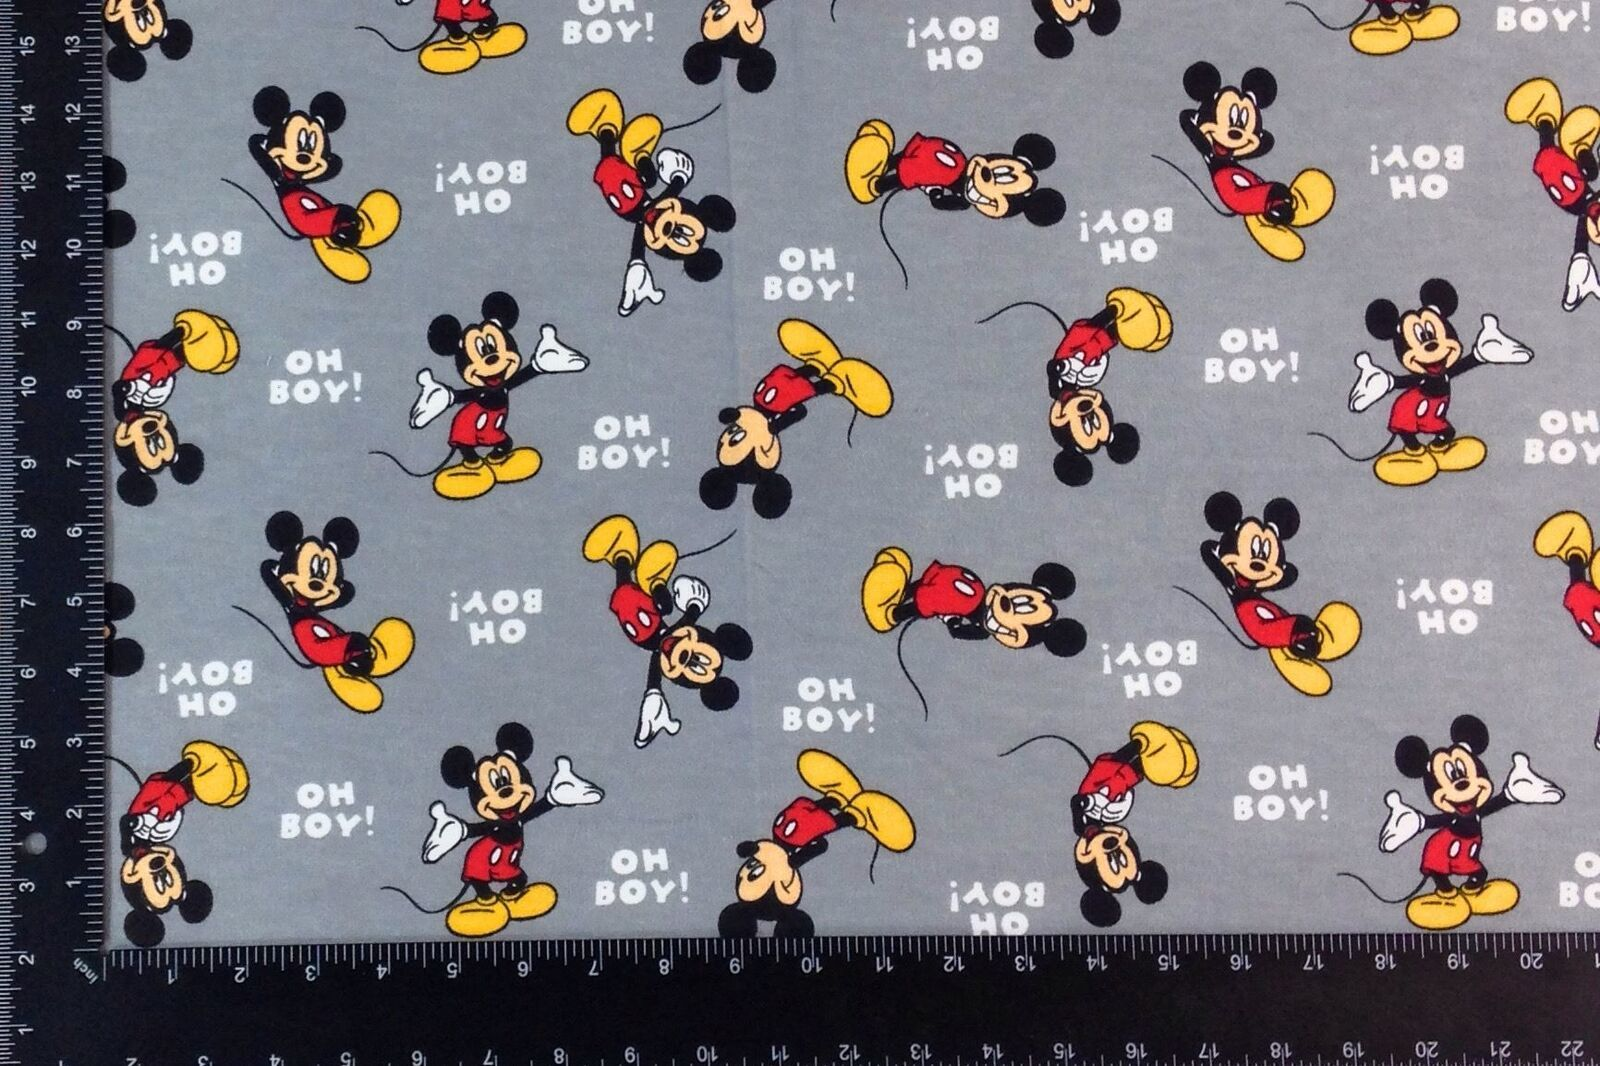 Mickey Mouse Grey Winceyette 100% Brushed Cotton Fabric Material 3 Sizes